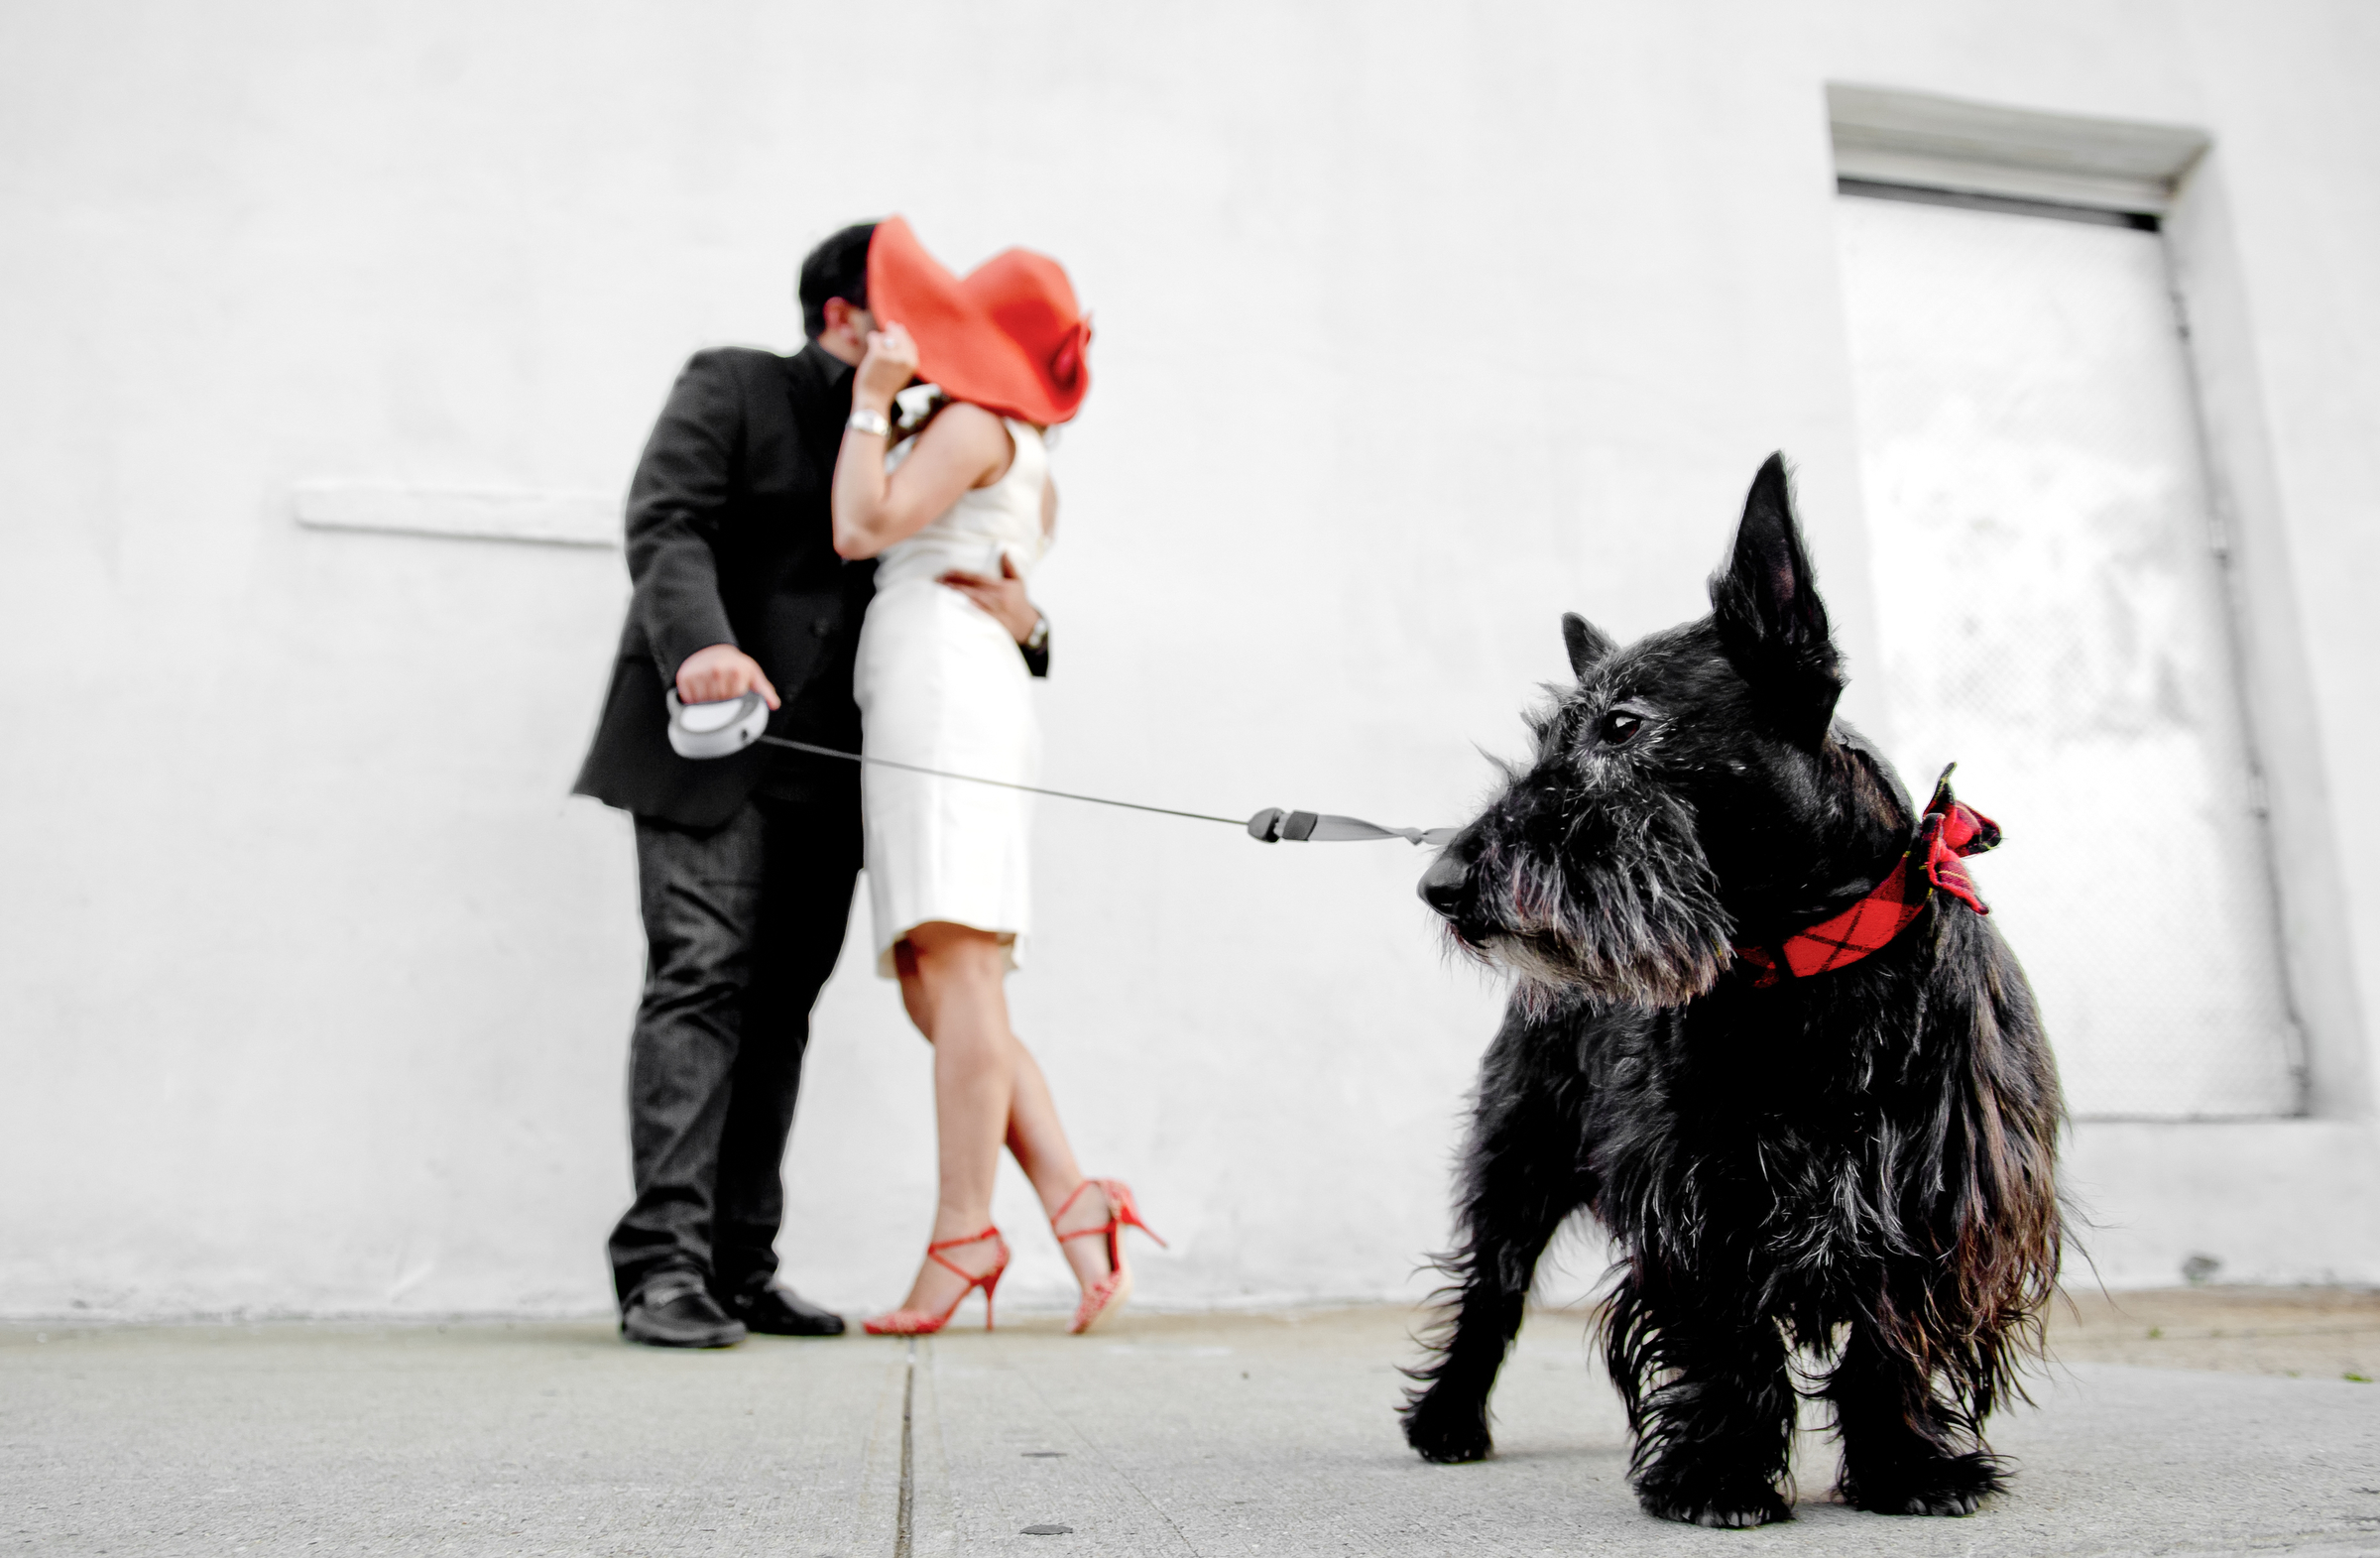 Engagement couple photo with cute dog - photo by Matthew Sowa Photography